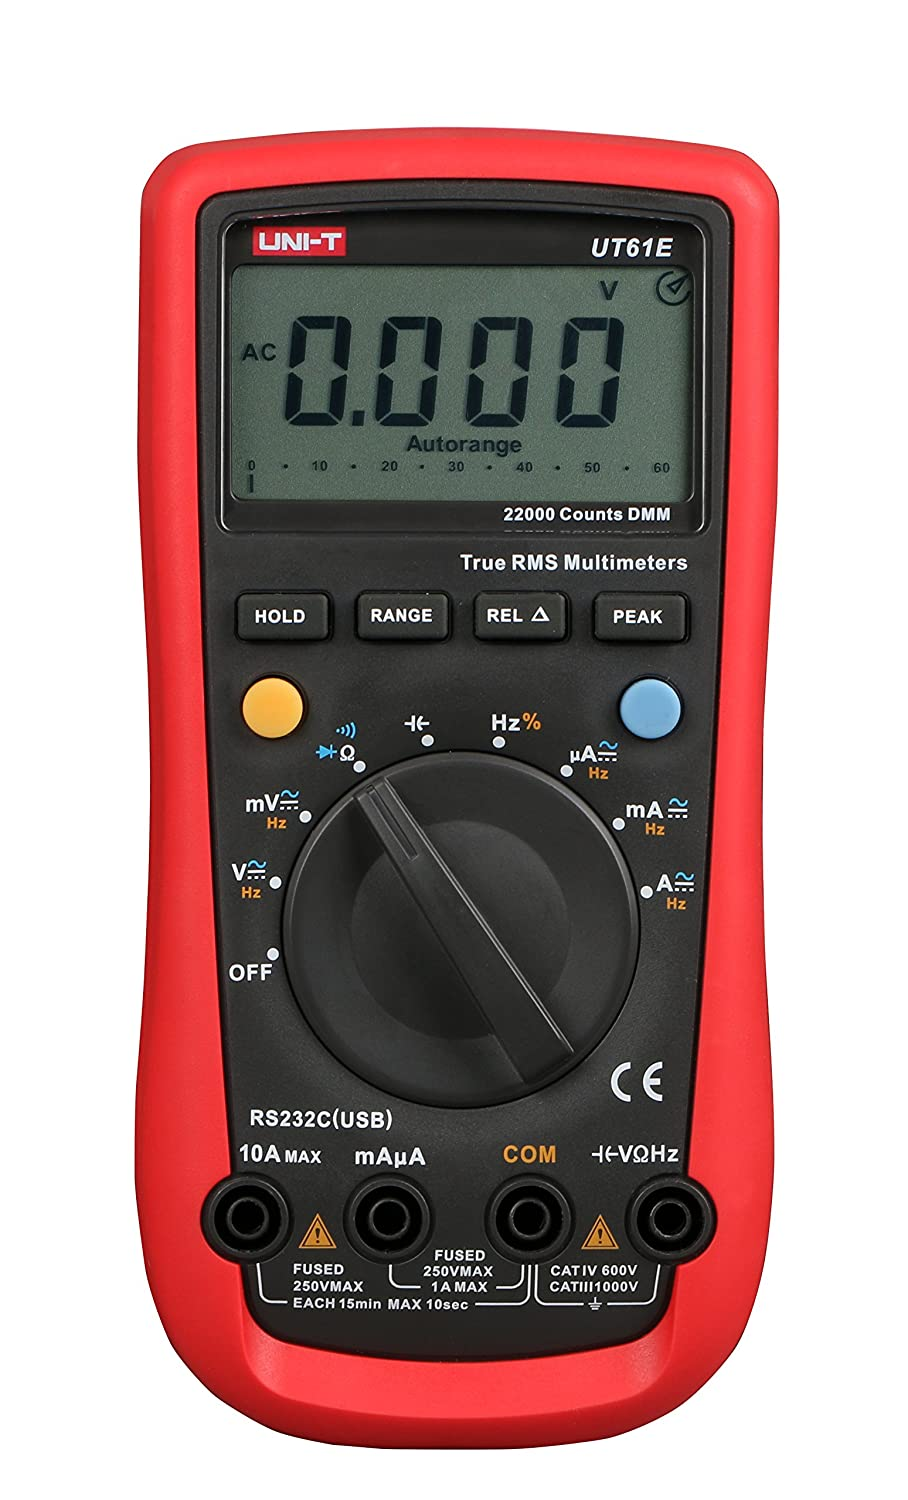 UNI-T UT61A Auto range Digital Multimeter EF detecor with Diode test and buzzer continuity Transistor testing with Data Hold